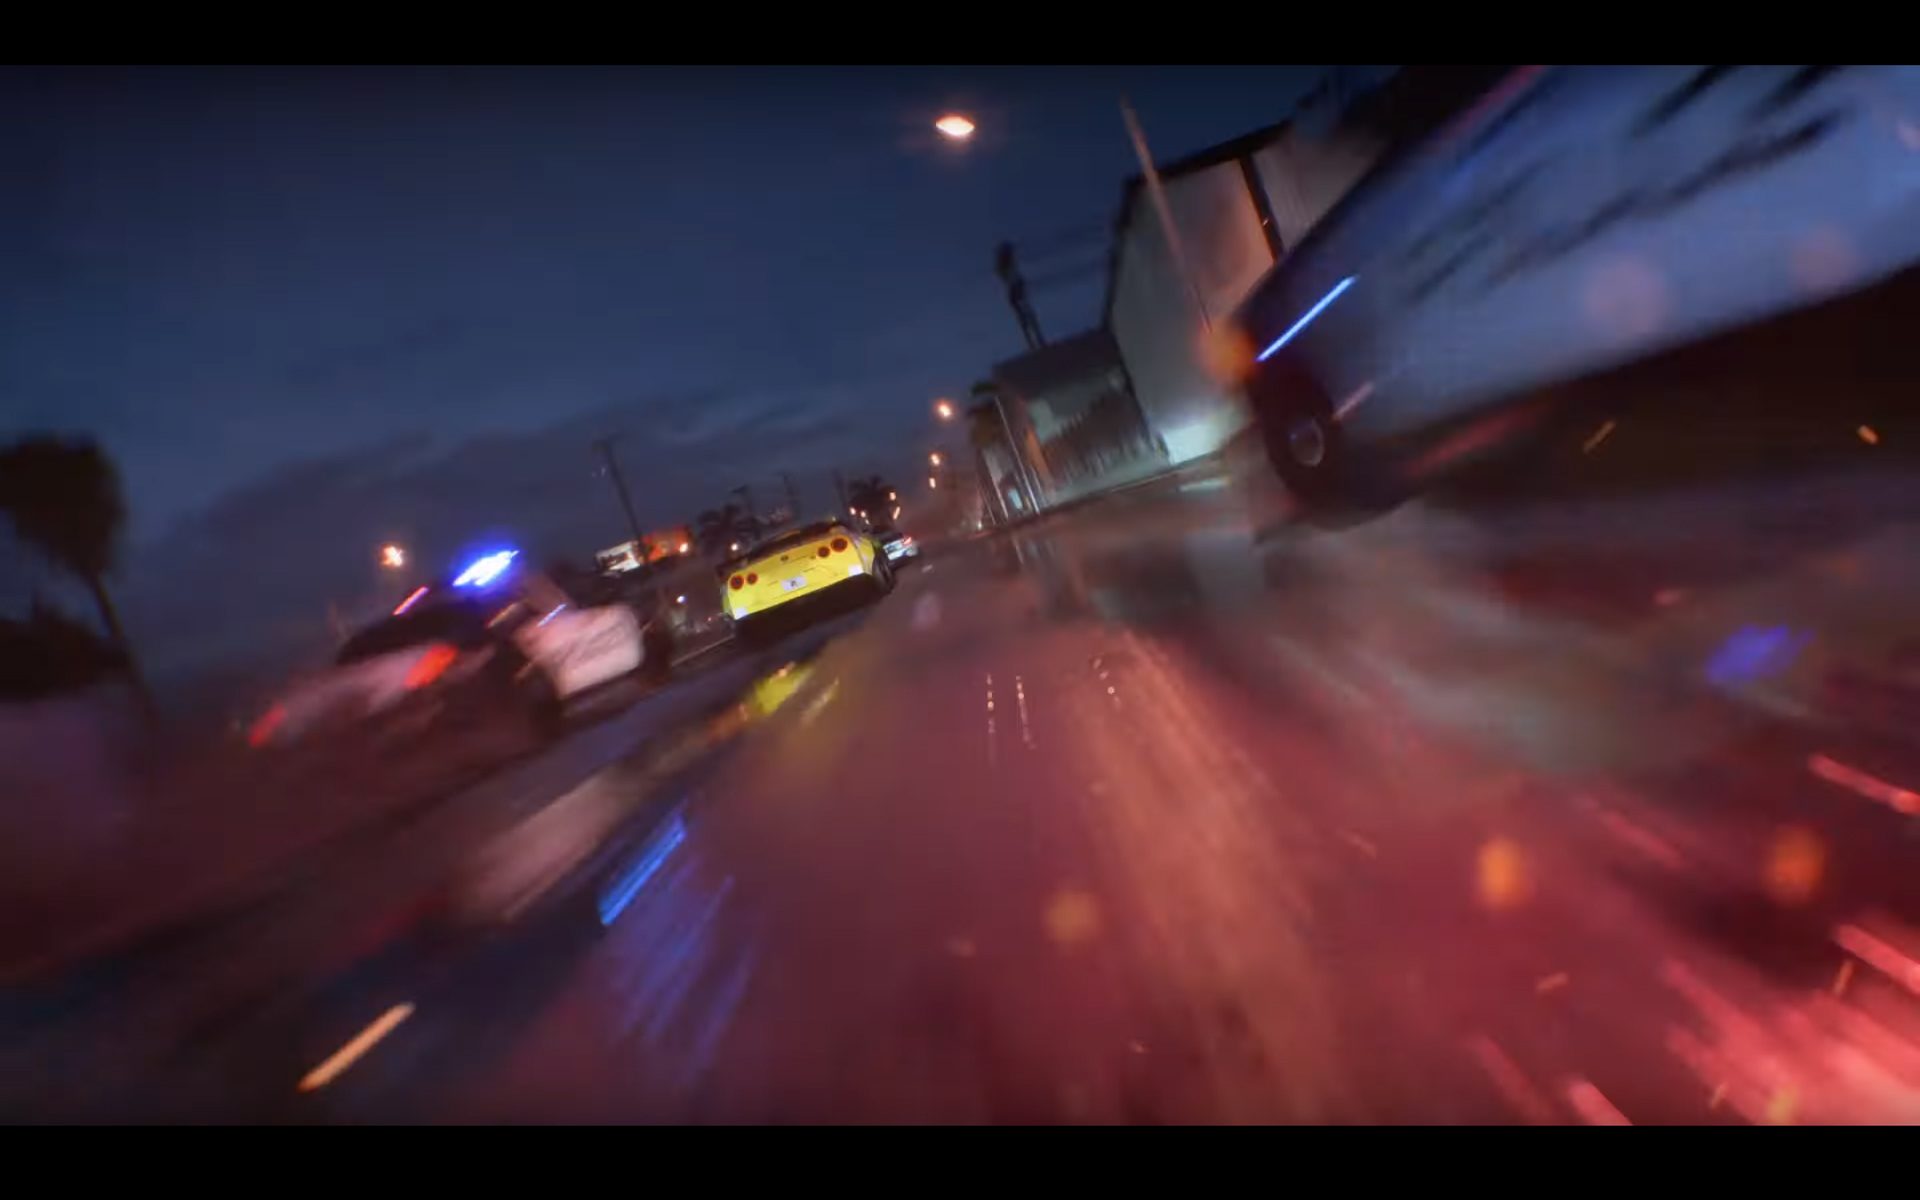 NFS-Heat-2019-screen-trailer-Nissan-GT-R-speed-rear-face-night-pursuit